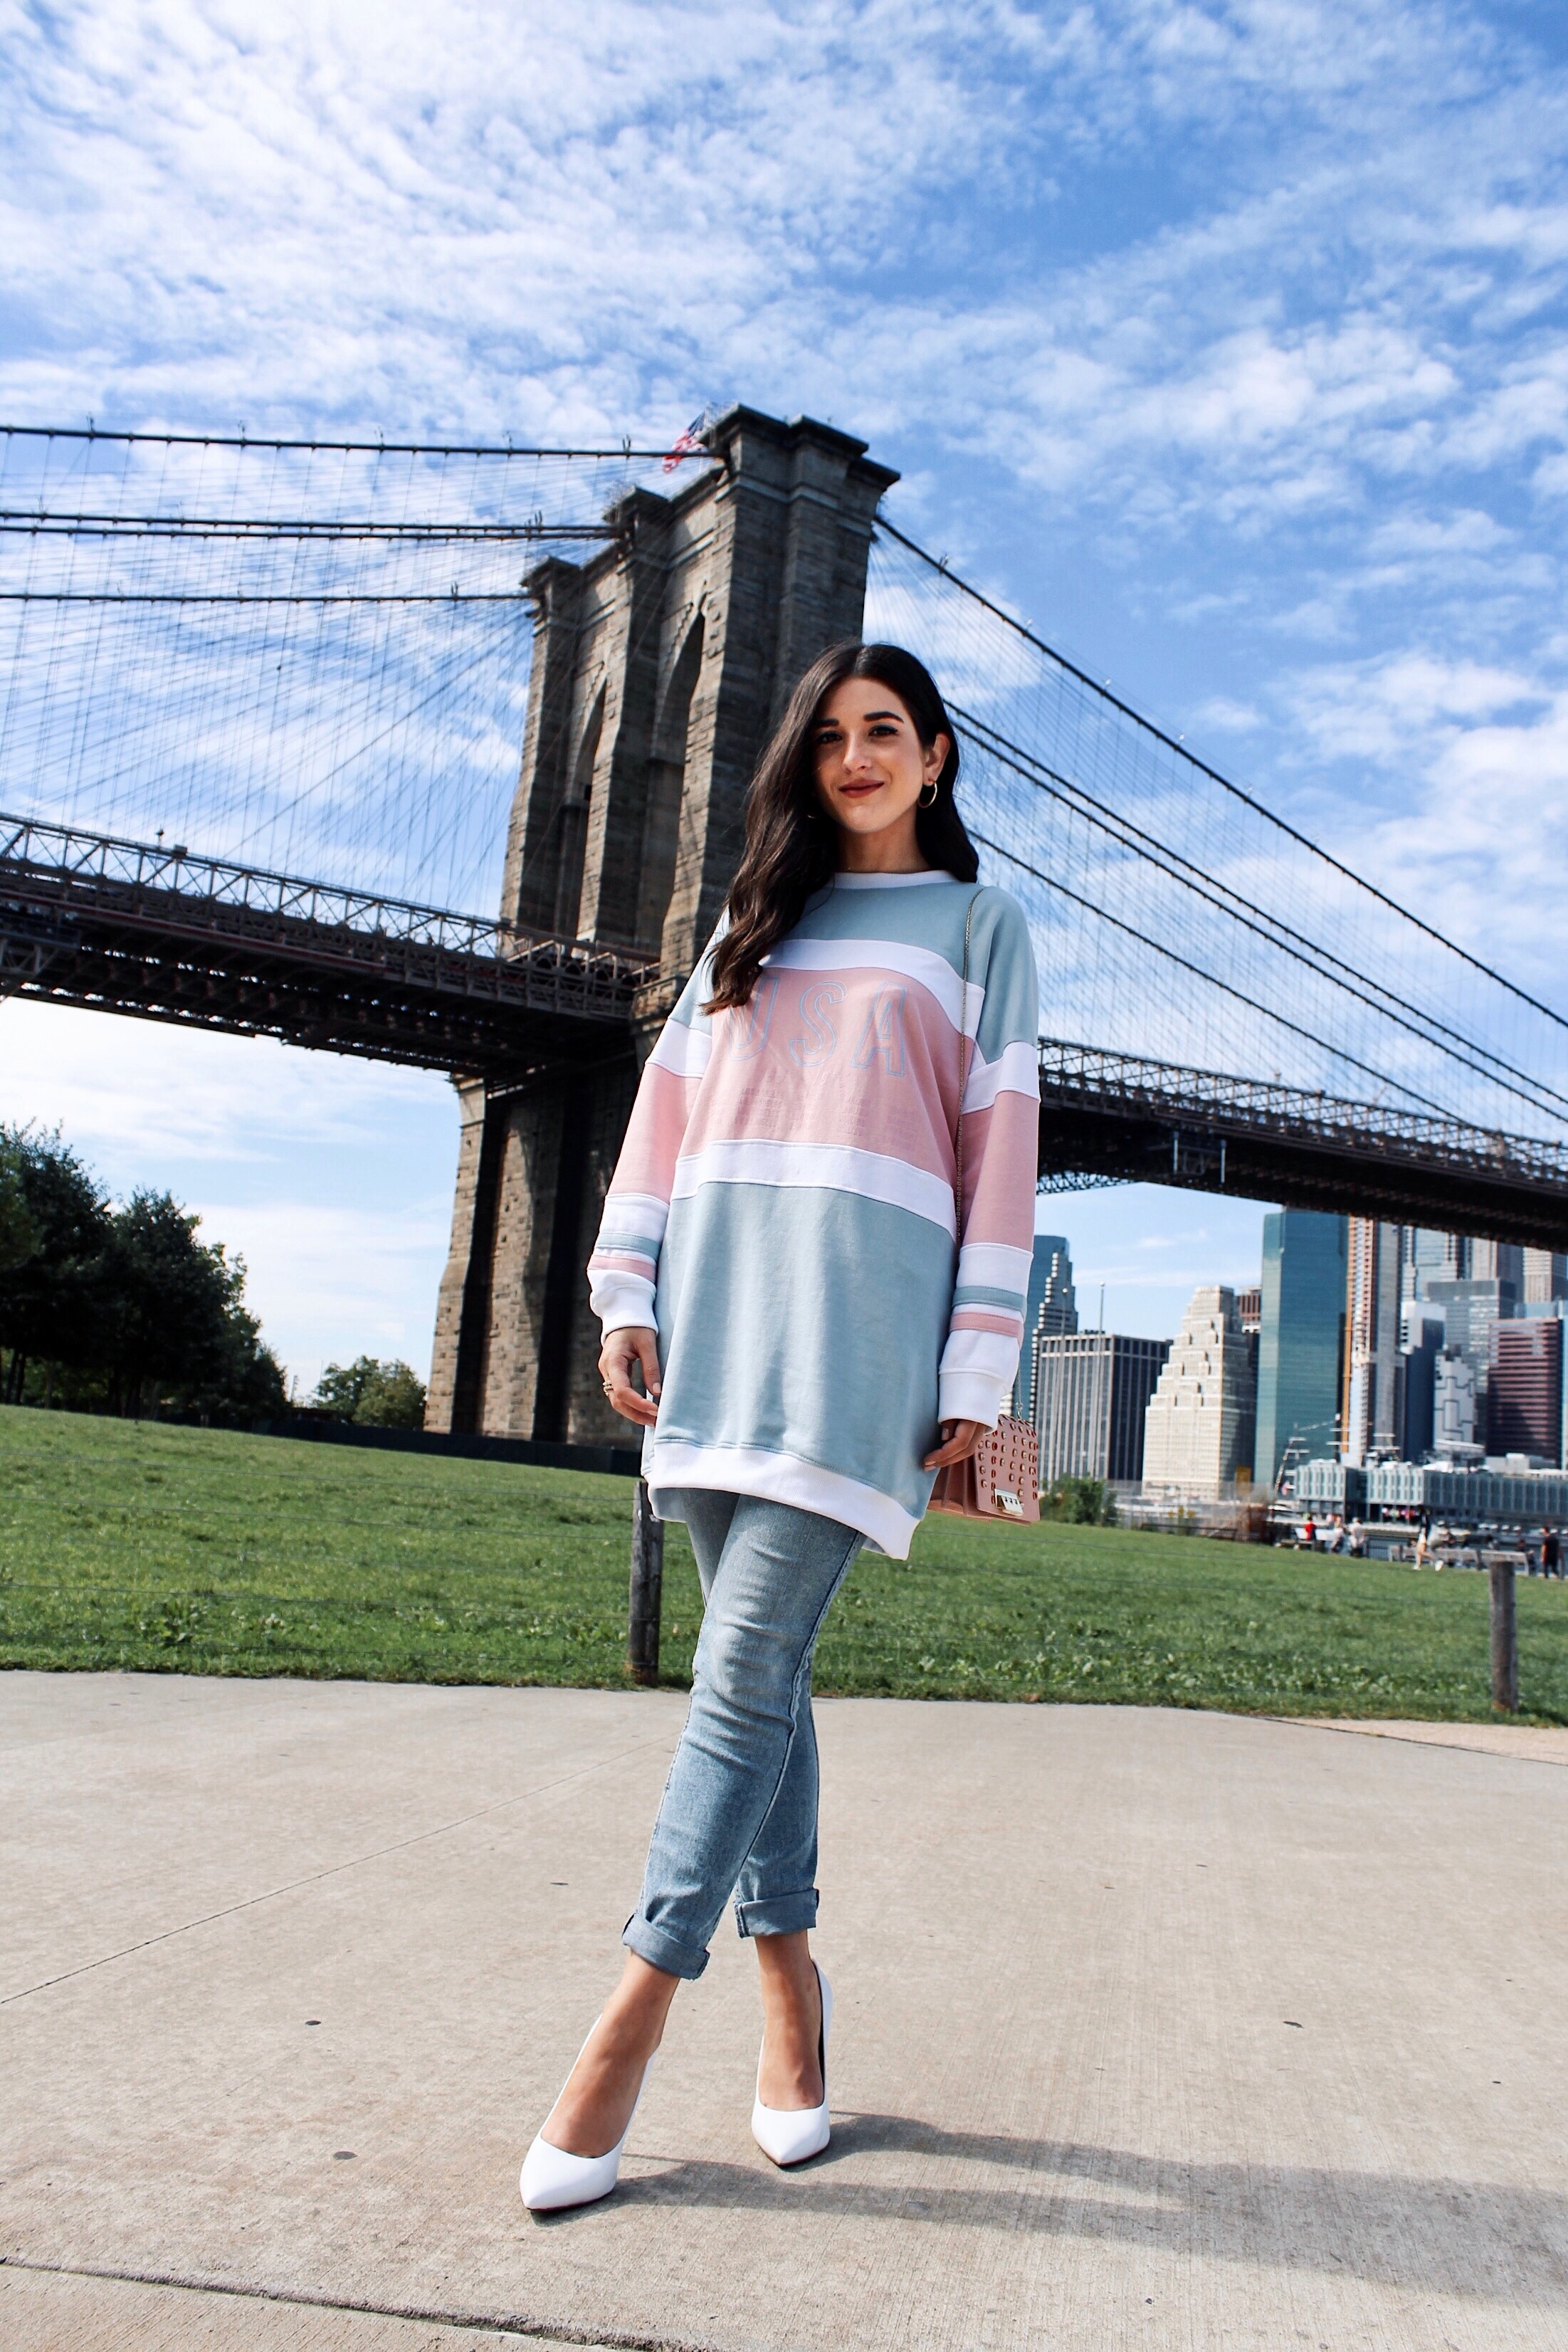 How To Style Kenneth Cole's White Riley Heels Esther Santer Fashion Blog NYC Street Style Blogger Outfit OOTD Trendy Brand Collaboration Comfortable Casual Wear Jeans Oversized Sweatshirt Pink Zac Posen Bag Girl Women  Dumbo Photoshoot Carousel Bridge.jpg